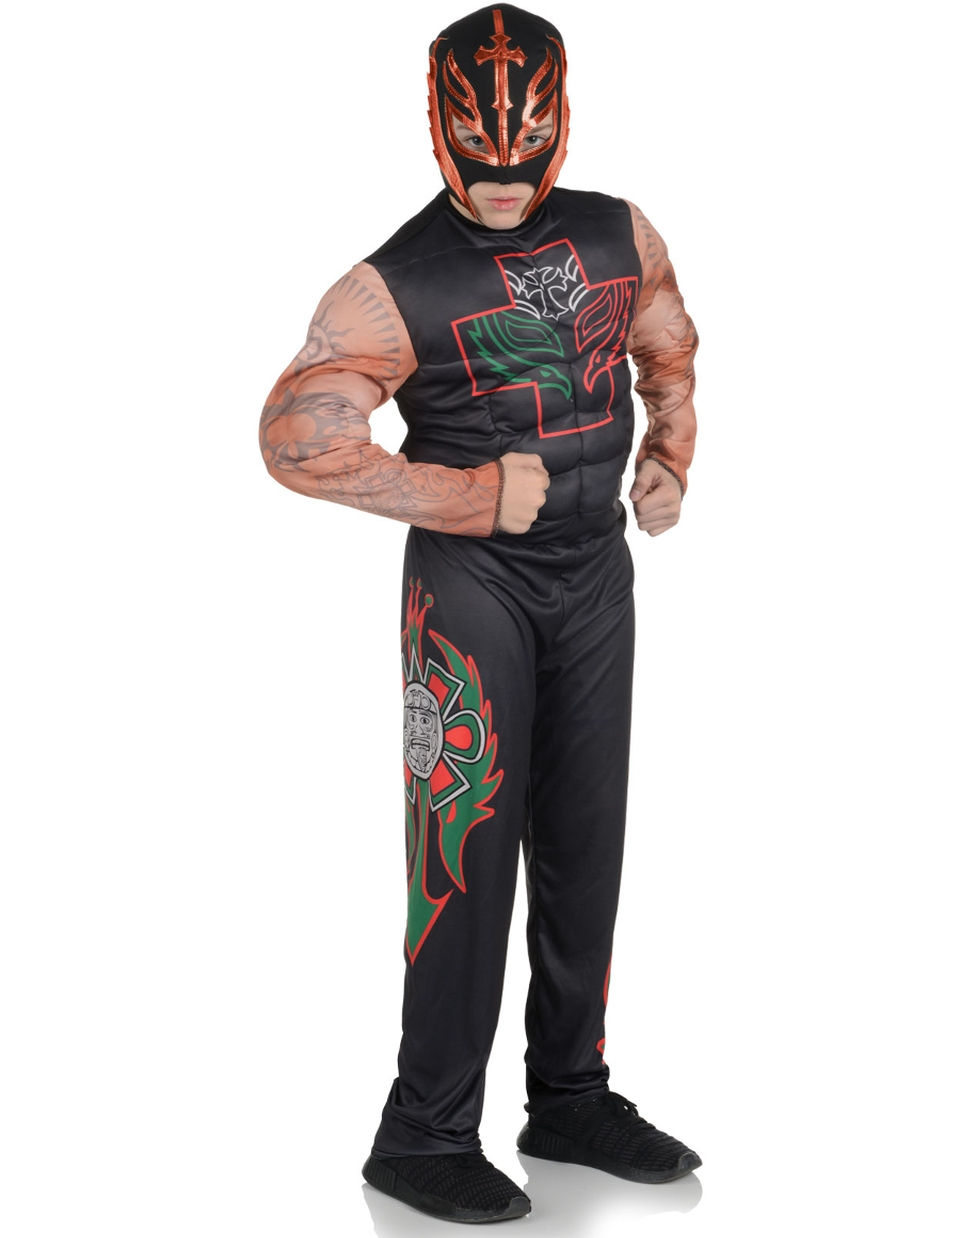 WWE LUCHA LIBRE REY MYSTERIO COSTUME FOR BOYS